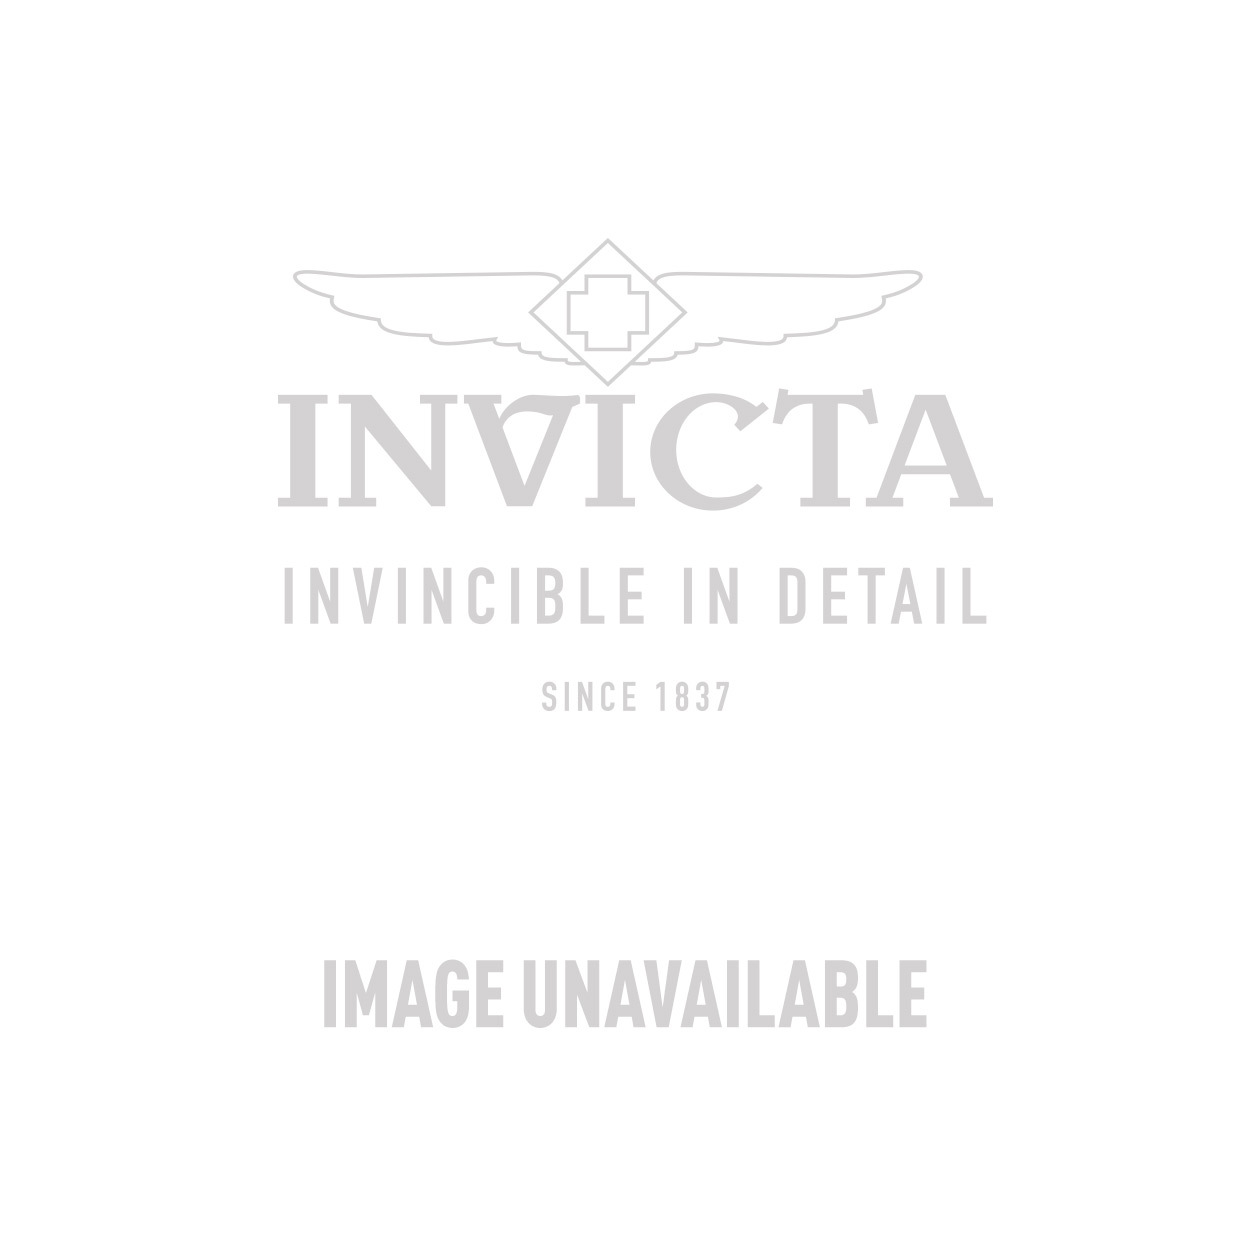 Invicta Sea Hunter  Quartz Watch - Stainless Steel case Stainless Steel band - Model 10762